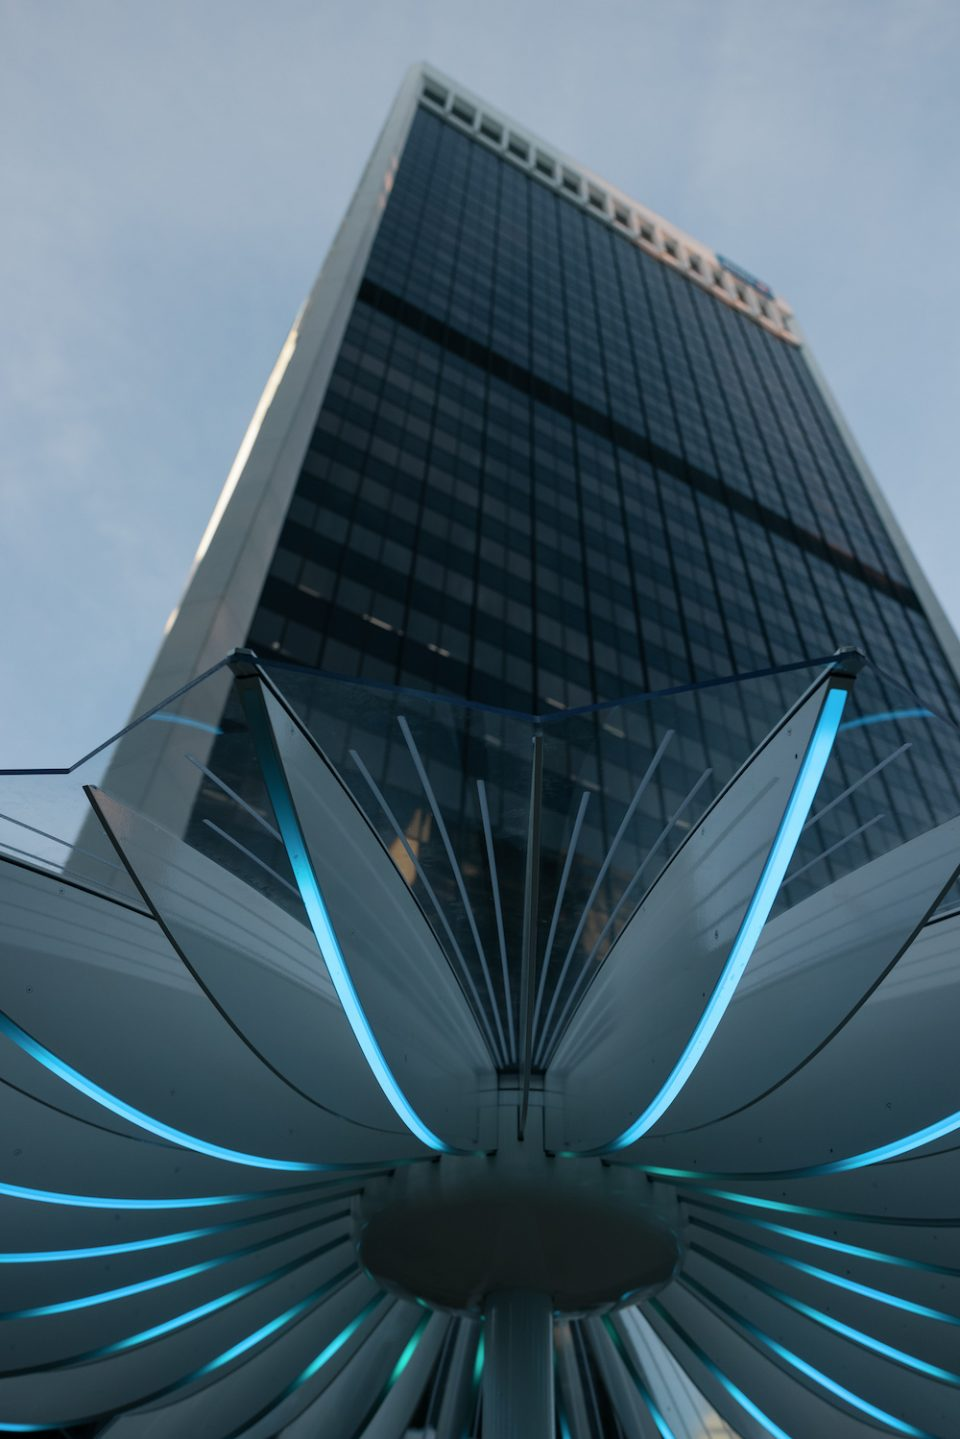 Bentall Centre parasols - Looking up at office tower